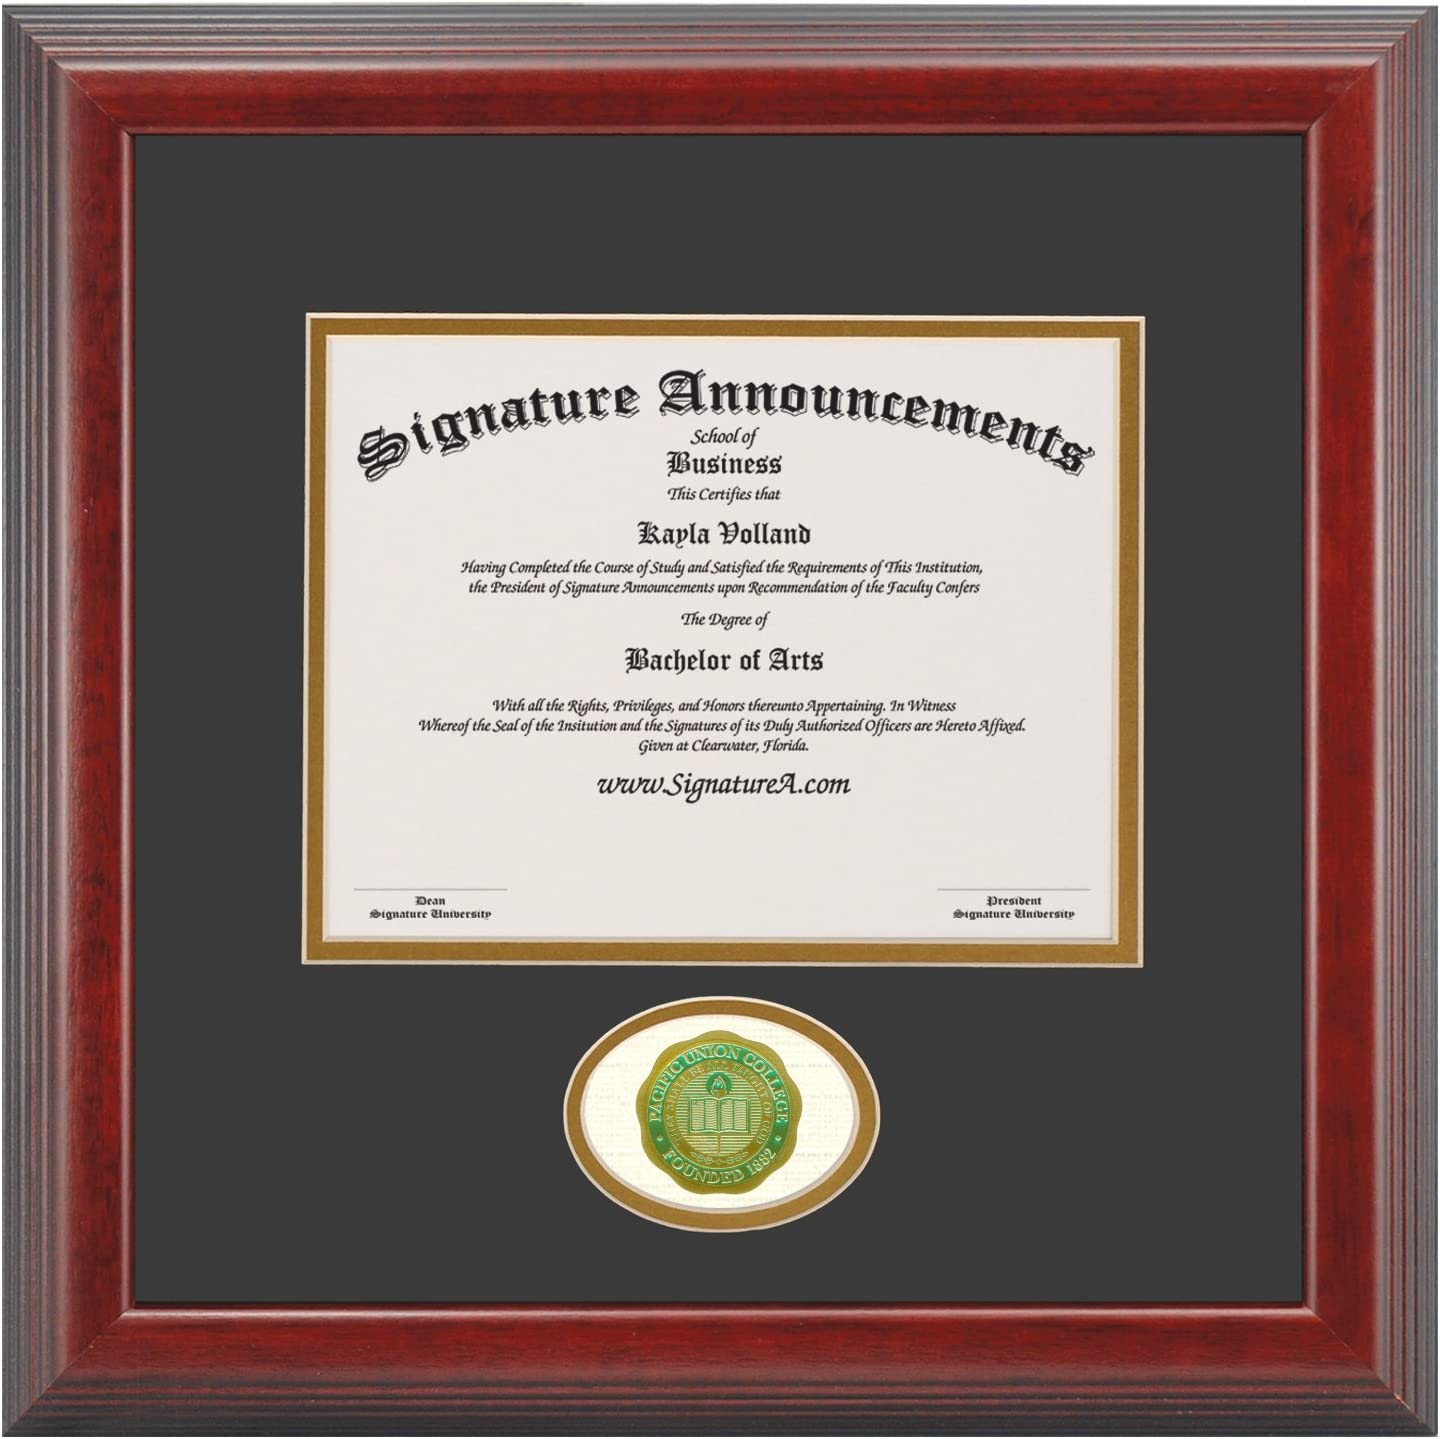 16 x 16 Gloss Mahogany with Gold Accent Signature Announcements Paine College Undergraduate Sculpted Foil Seal /& Name Graduation Diploma Frame